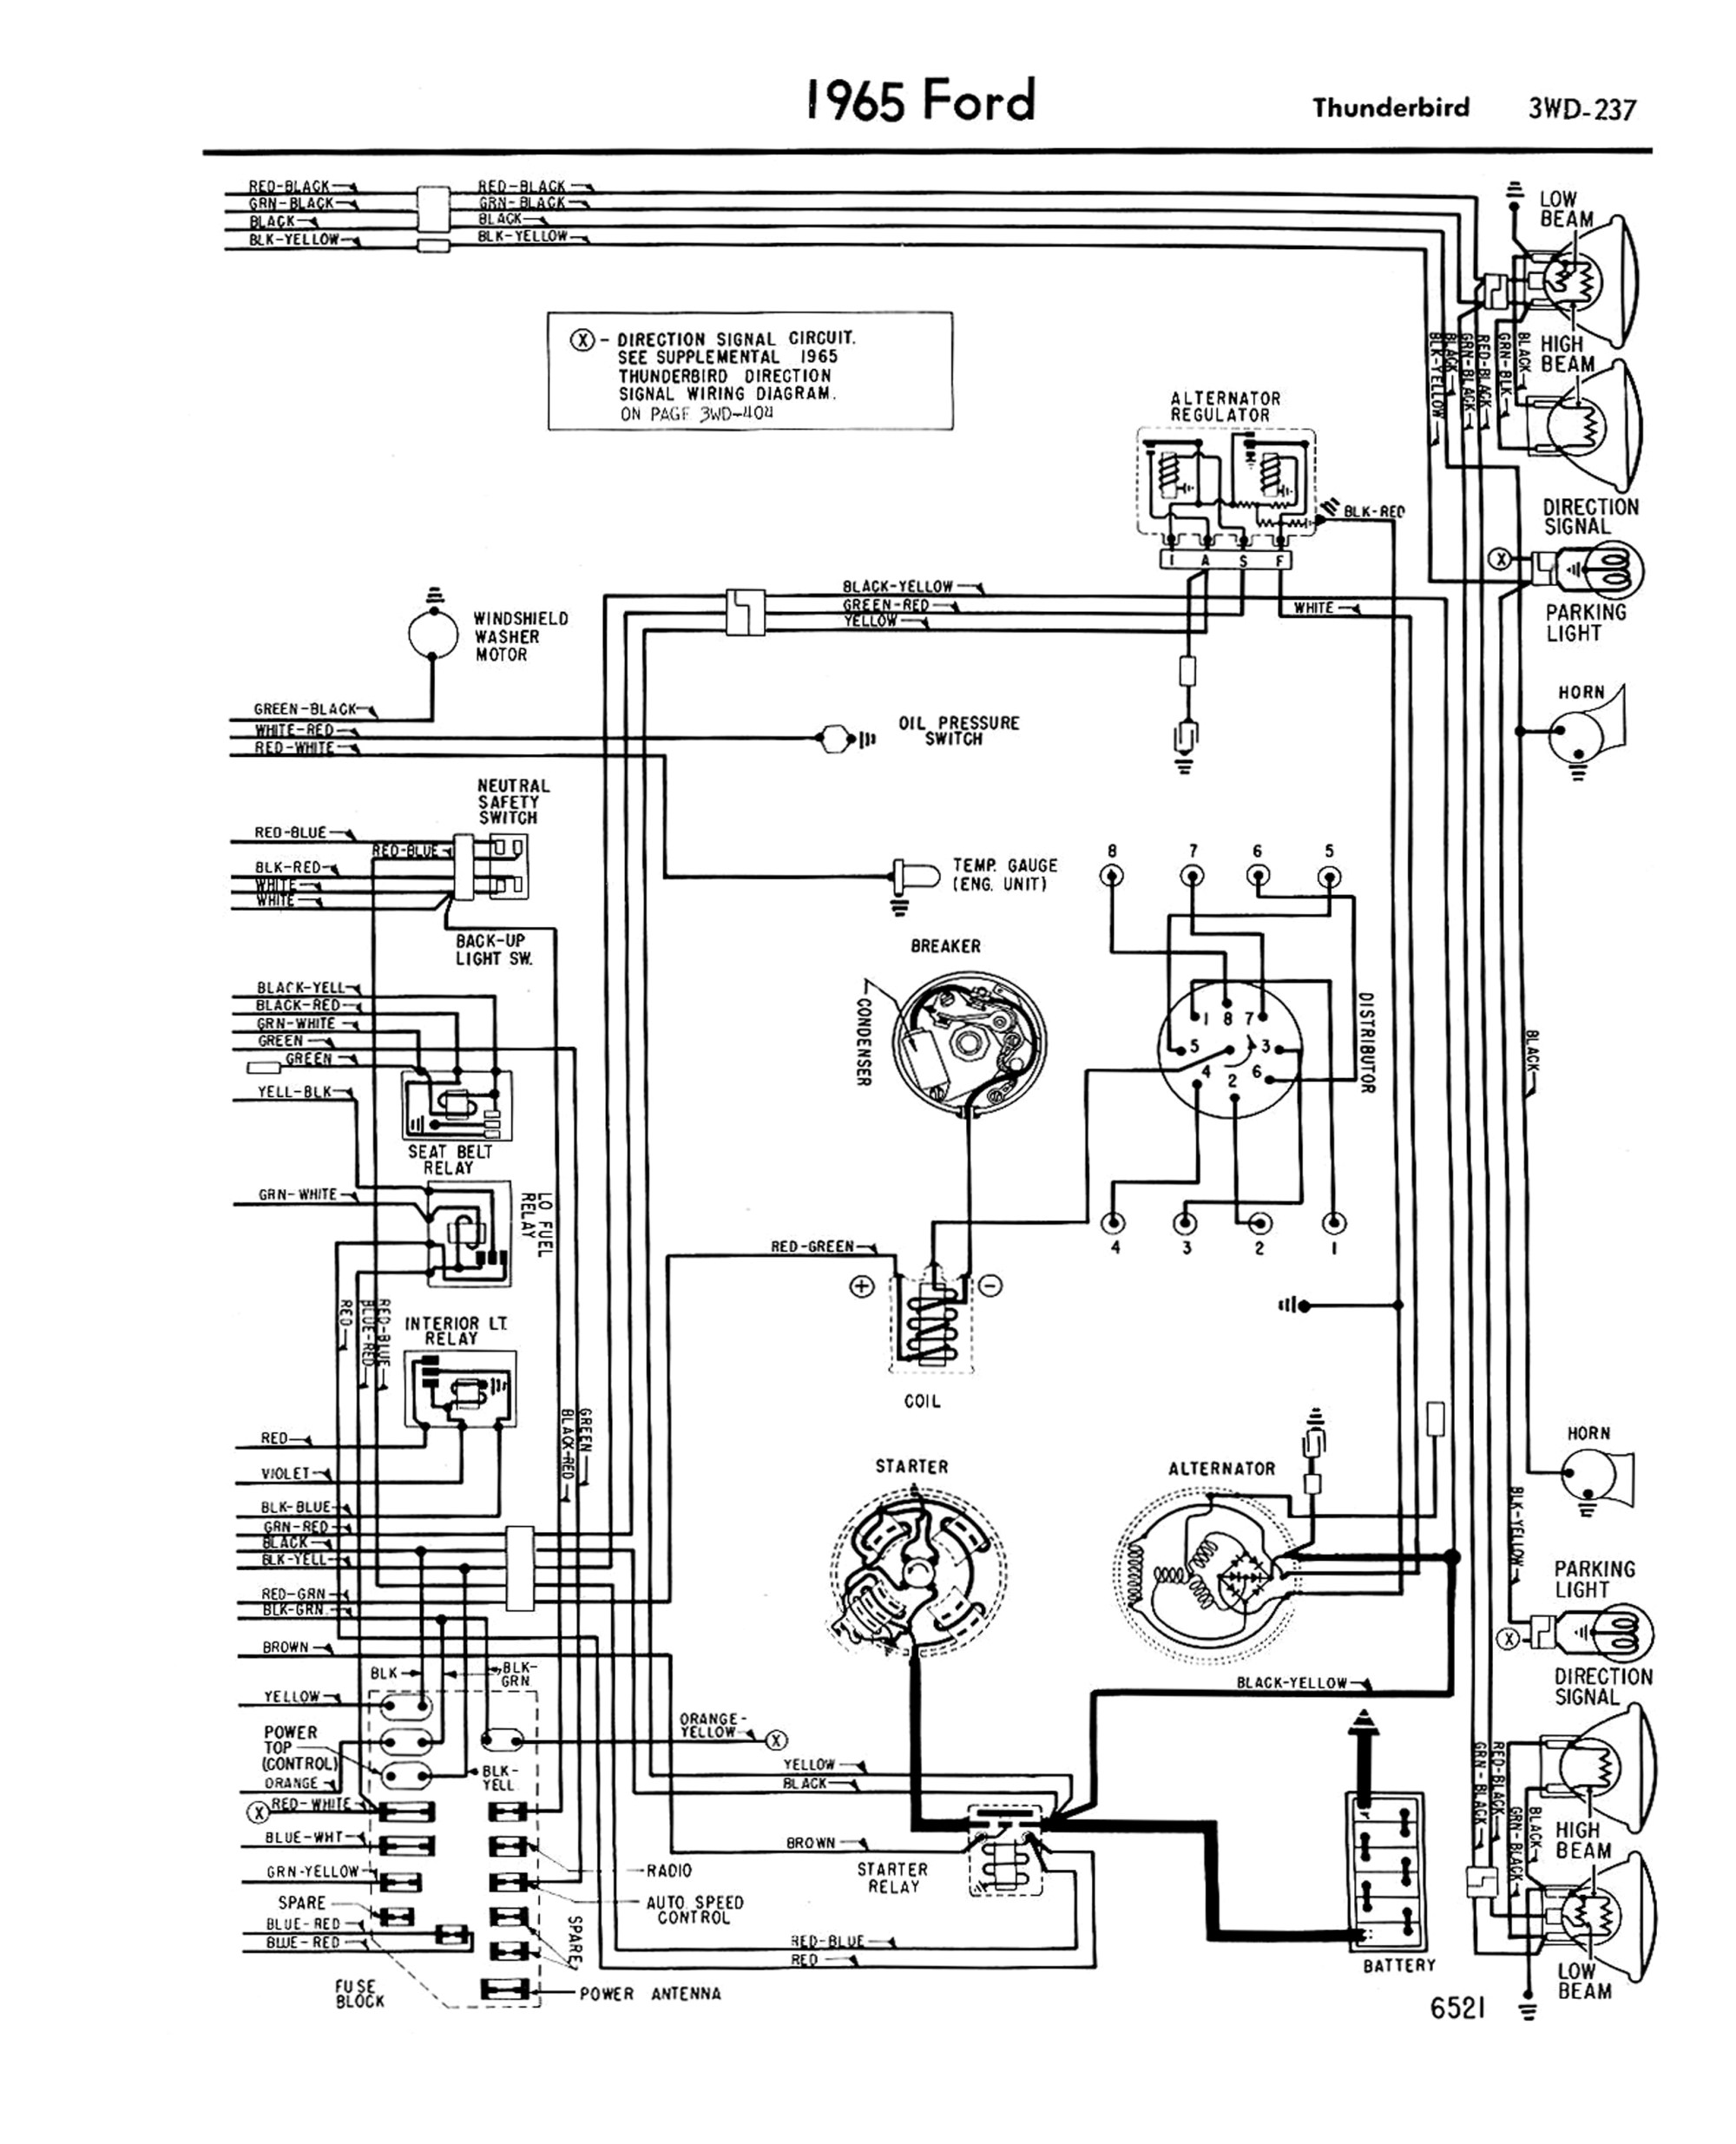 hight resolution of 1965 ford t bird wiring opinions about wiring diagram u2022 rh voterid co 1965 ford thunderbird